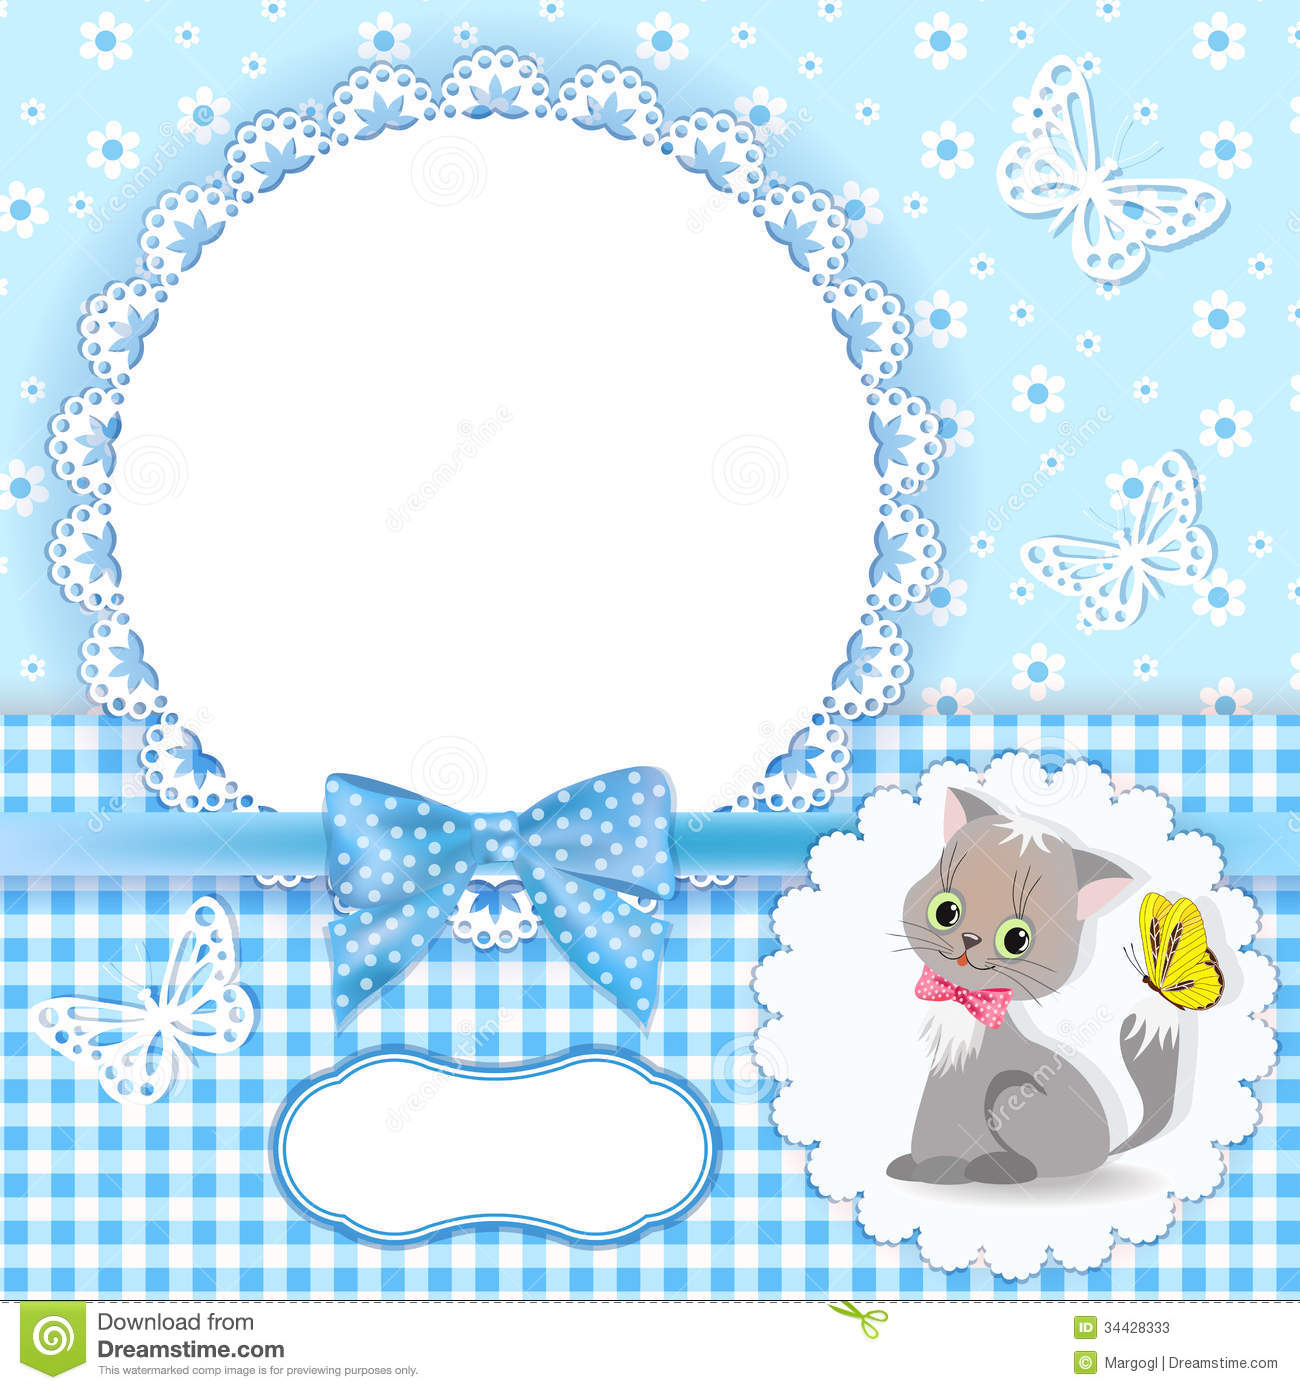 Baby Background With Frame. Stock Photos - Image: 34428333